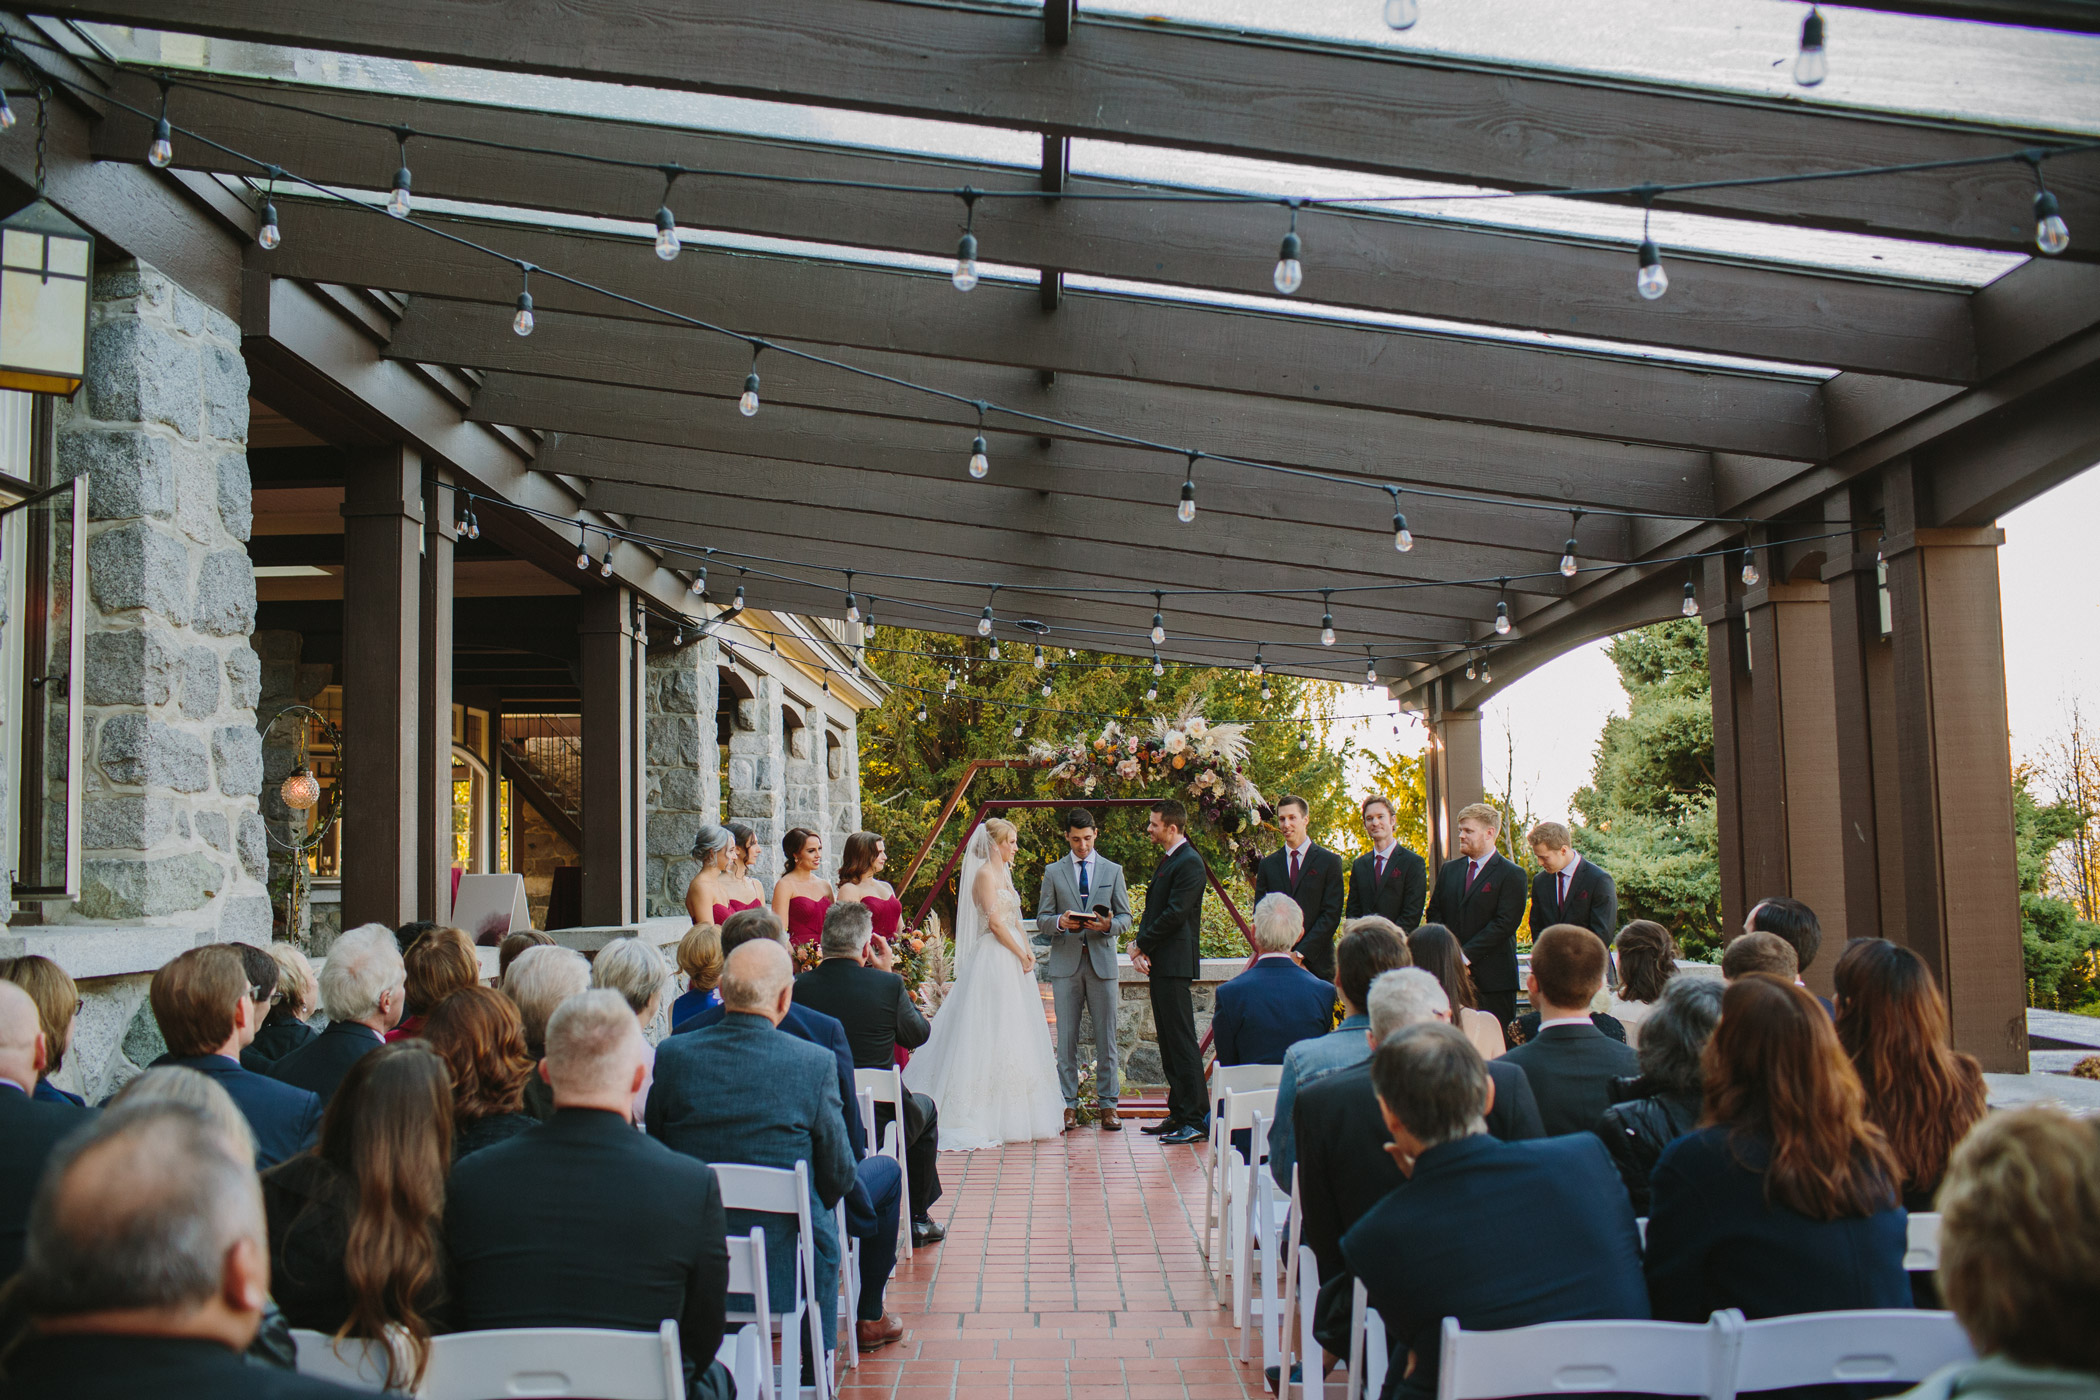 Cecil Green Park House Wedding Ceremony